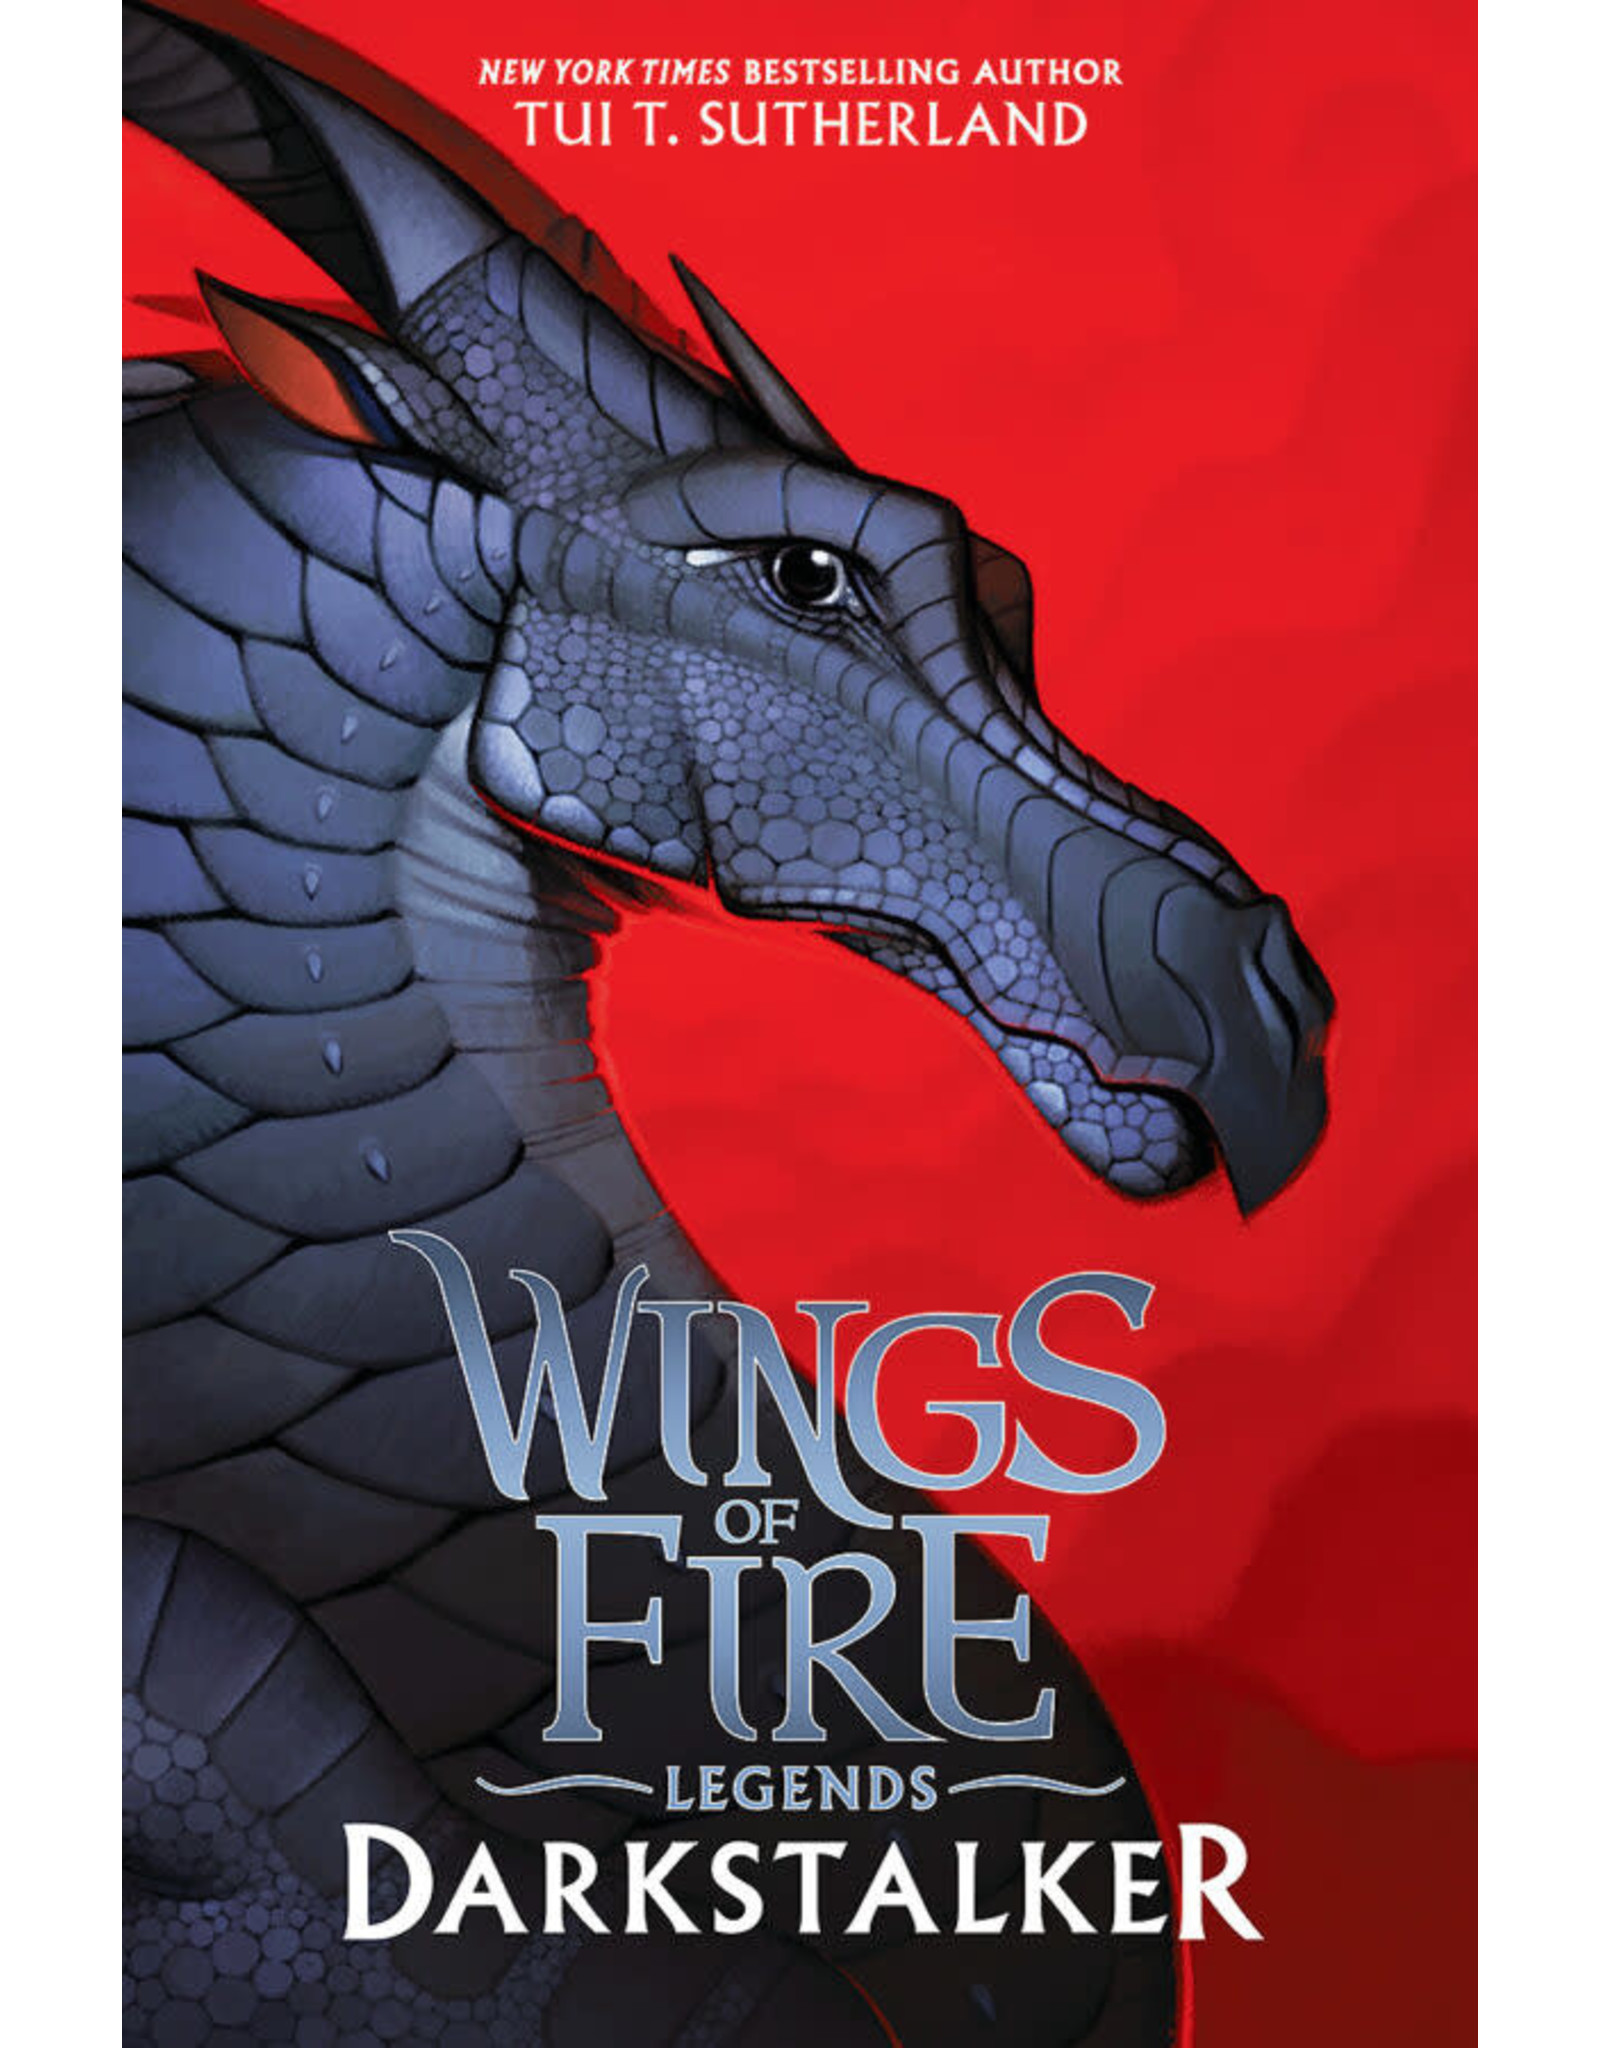 SCHOLASTIC INC. WINGS OF FIRE LEGENDS DARKSTALKER